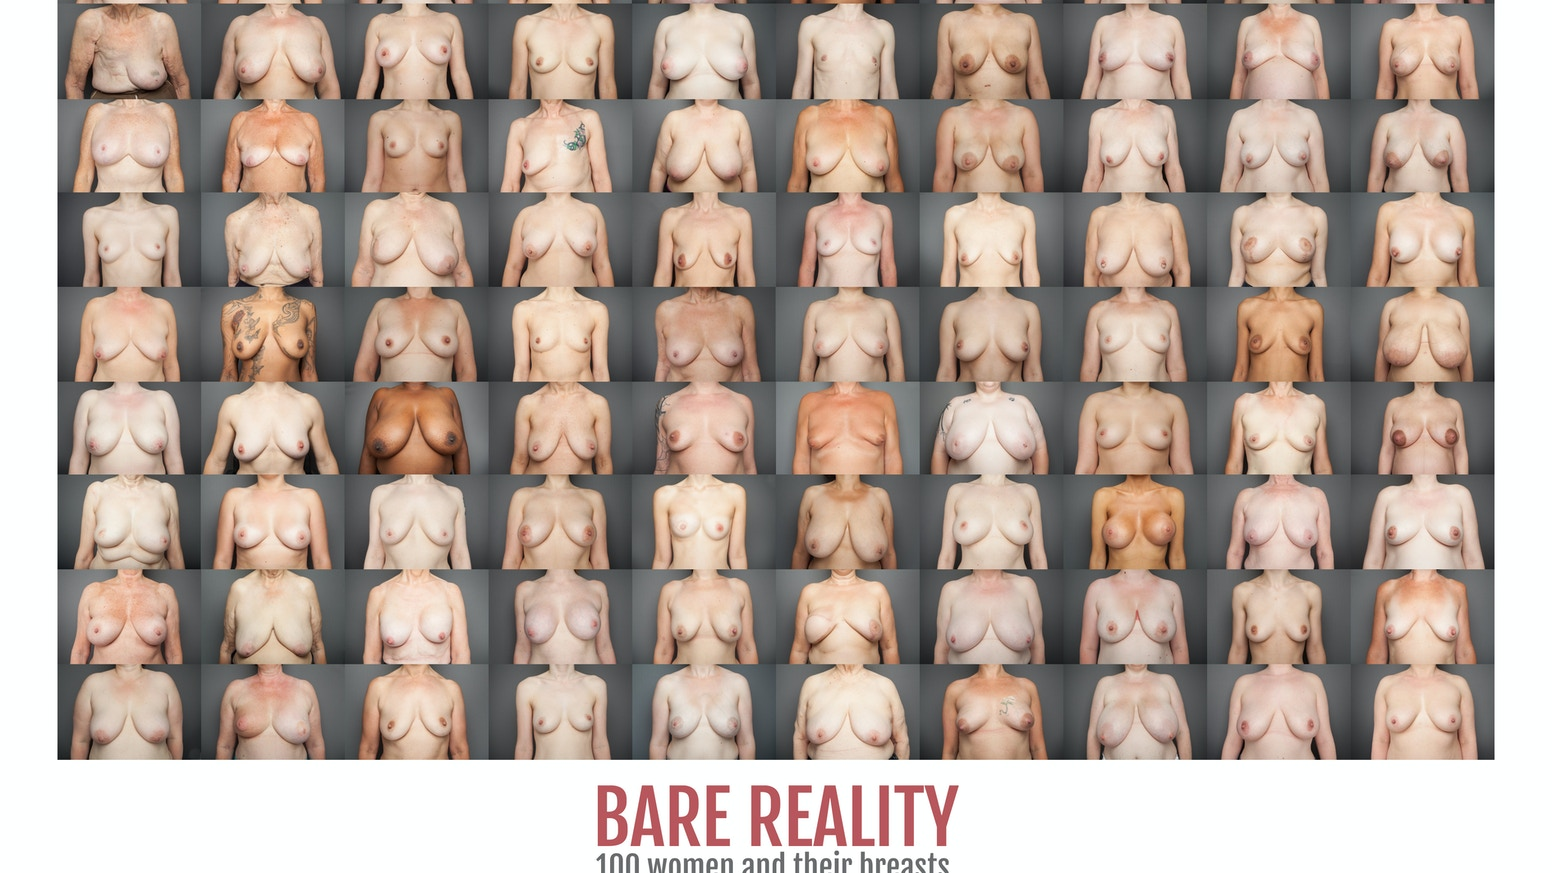 100 women bare their breasts alongside intimate, honest, courageous and moving stories about their breasts and their lives. Now a book!